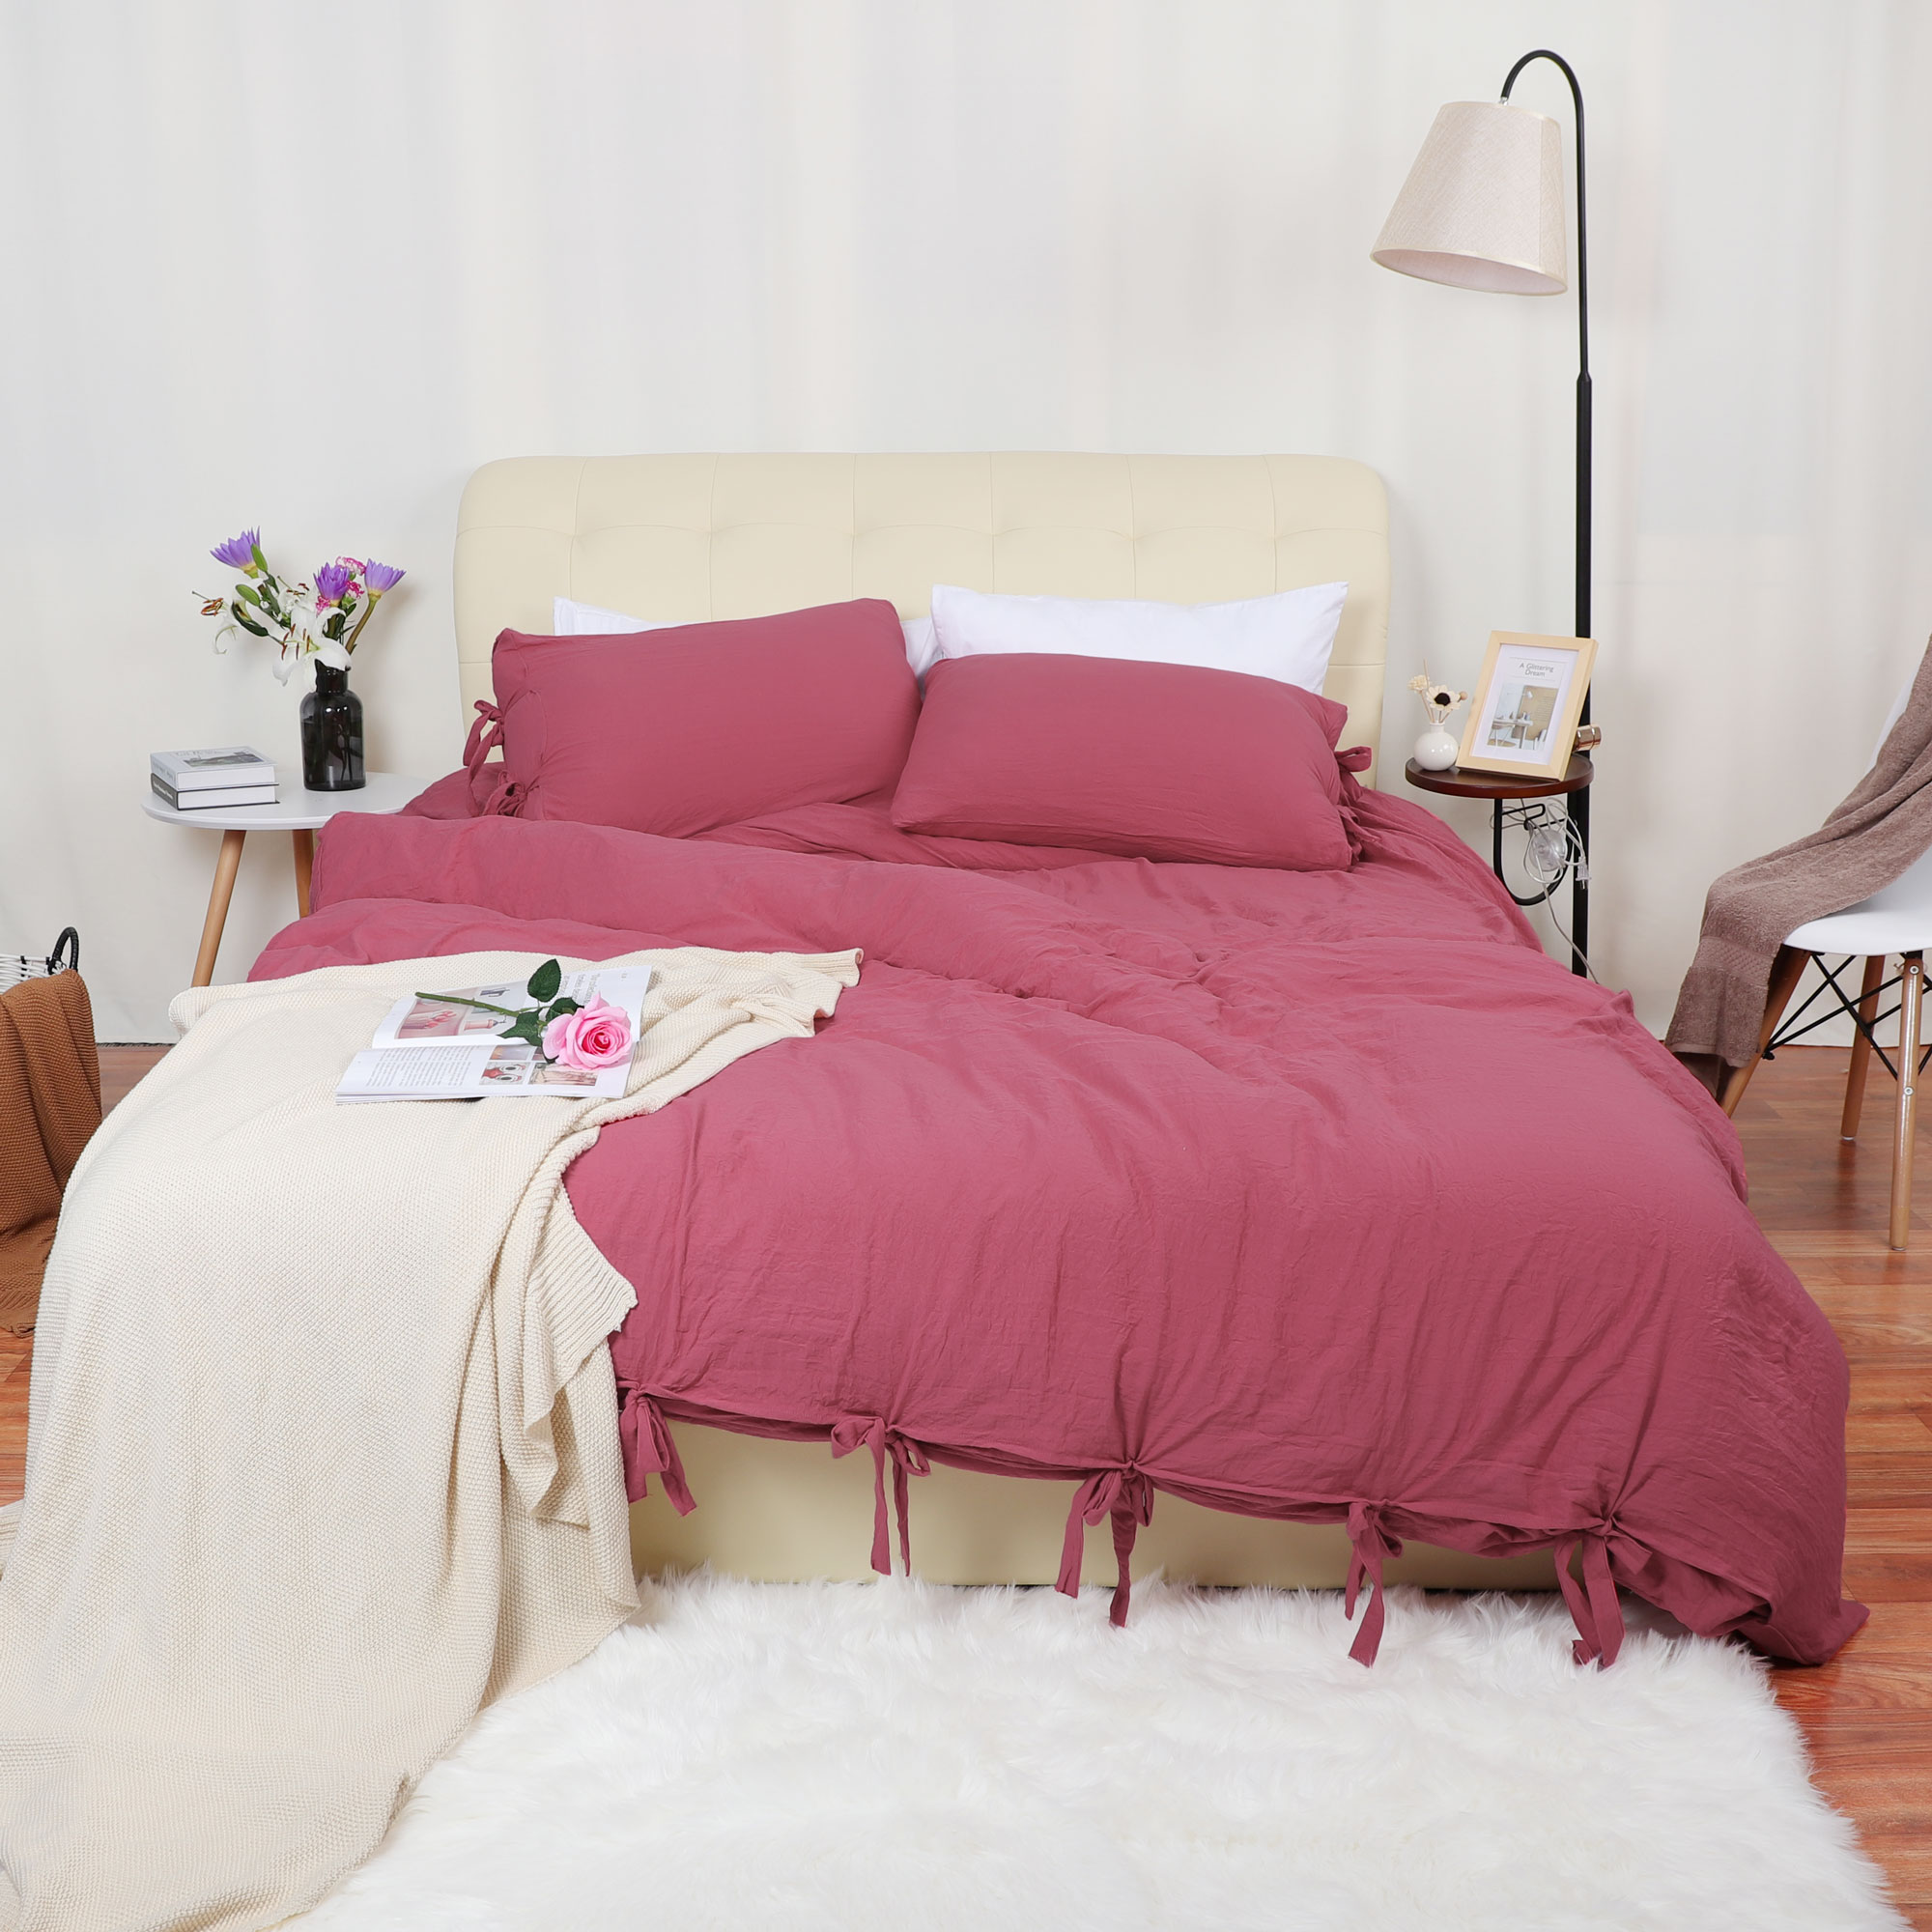 Washed Cotton Bedding Duvet Cover Pillowcase Solid Color Queen Light Purple